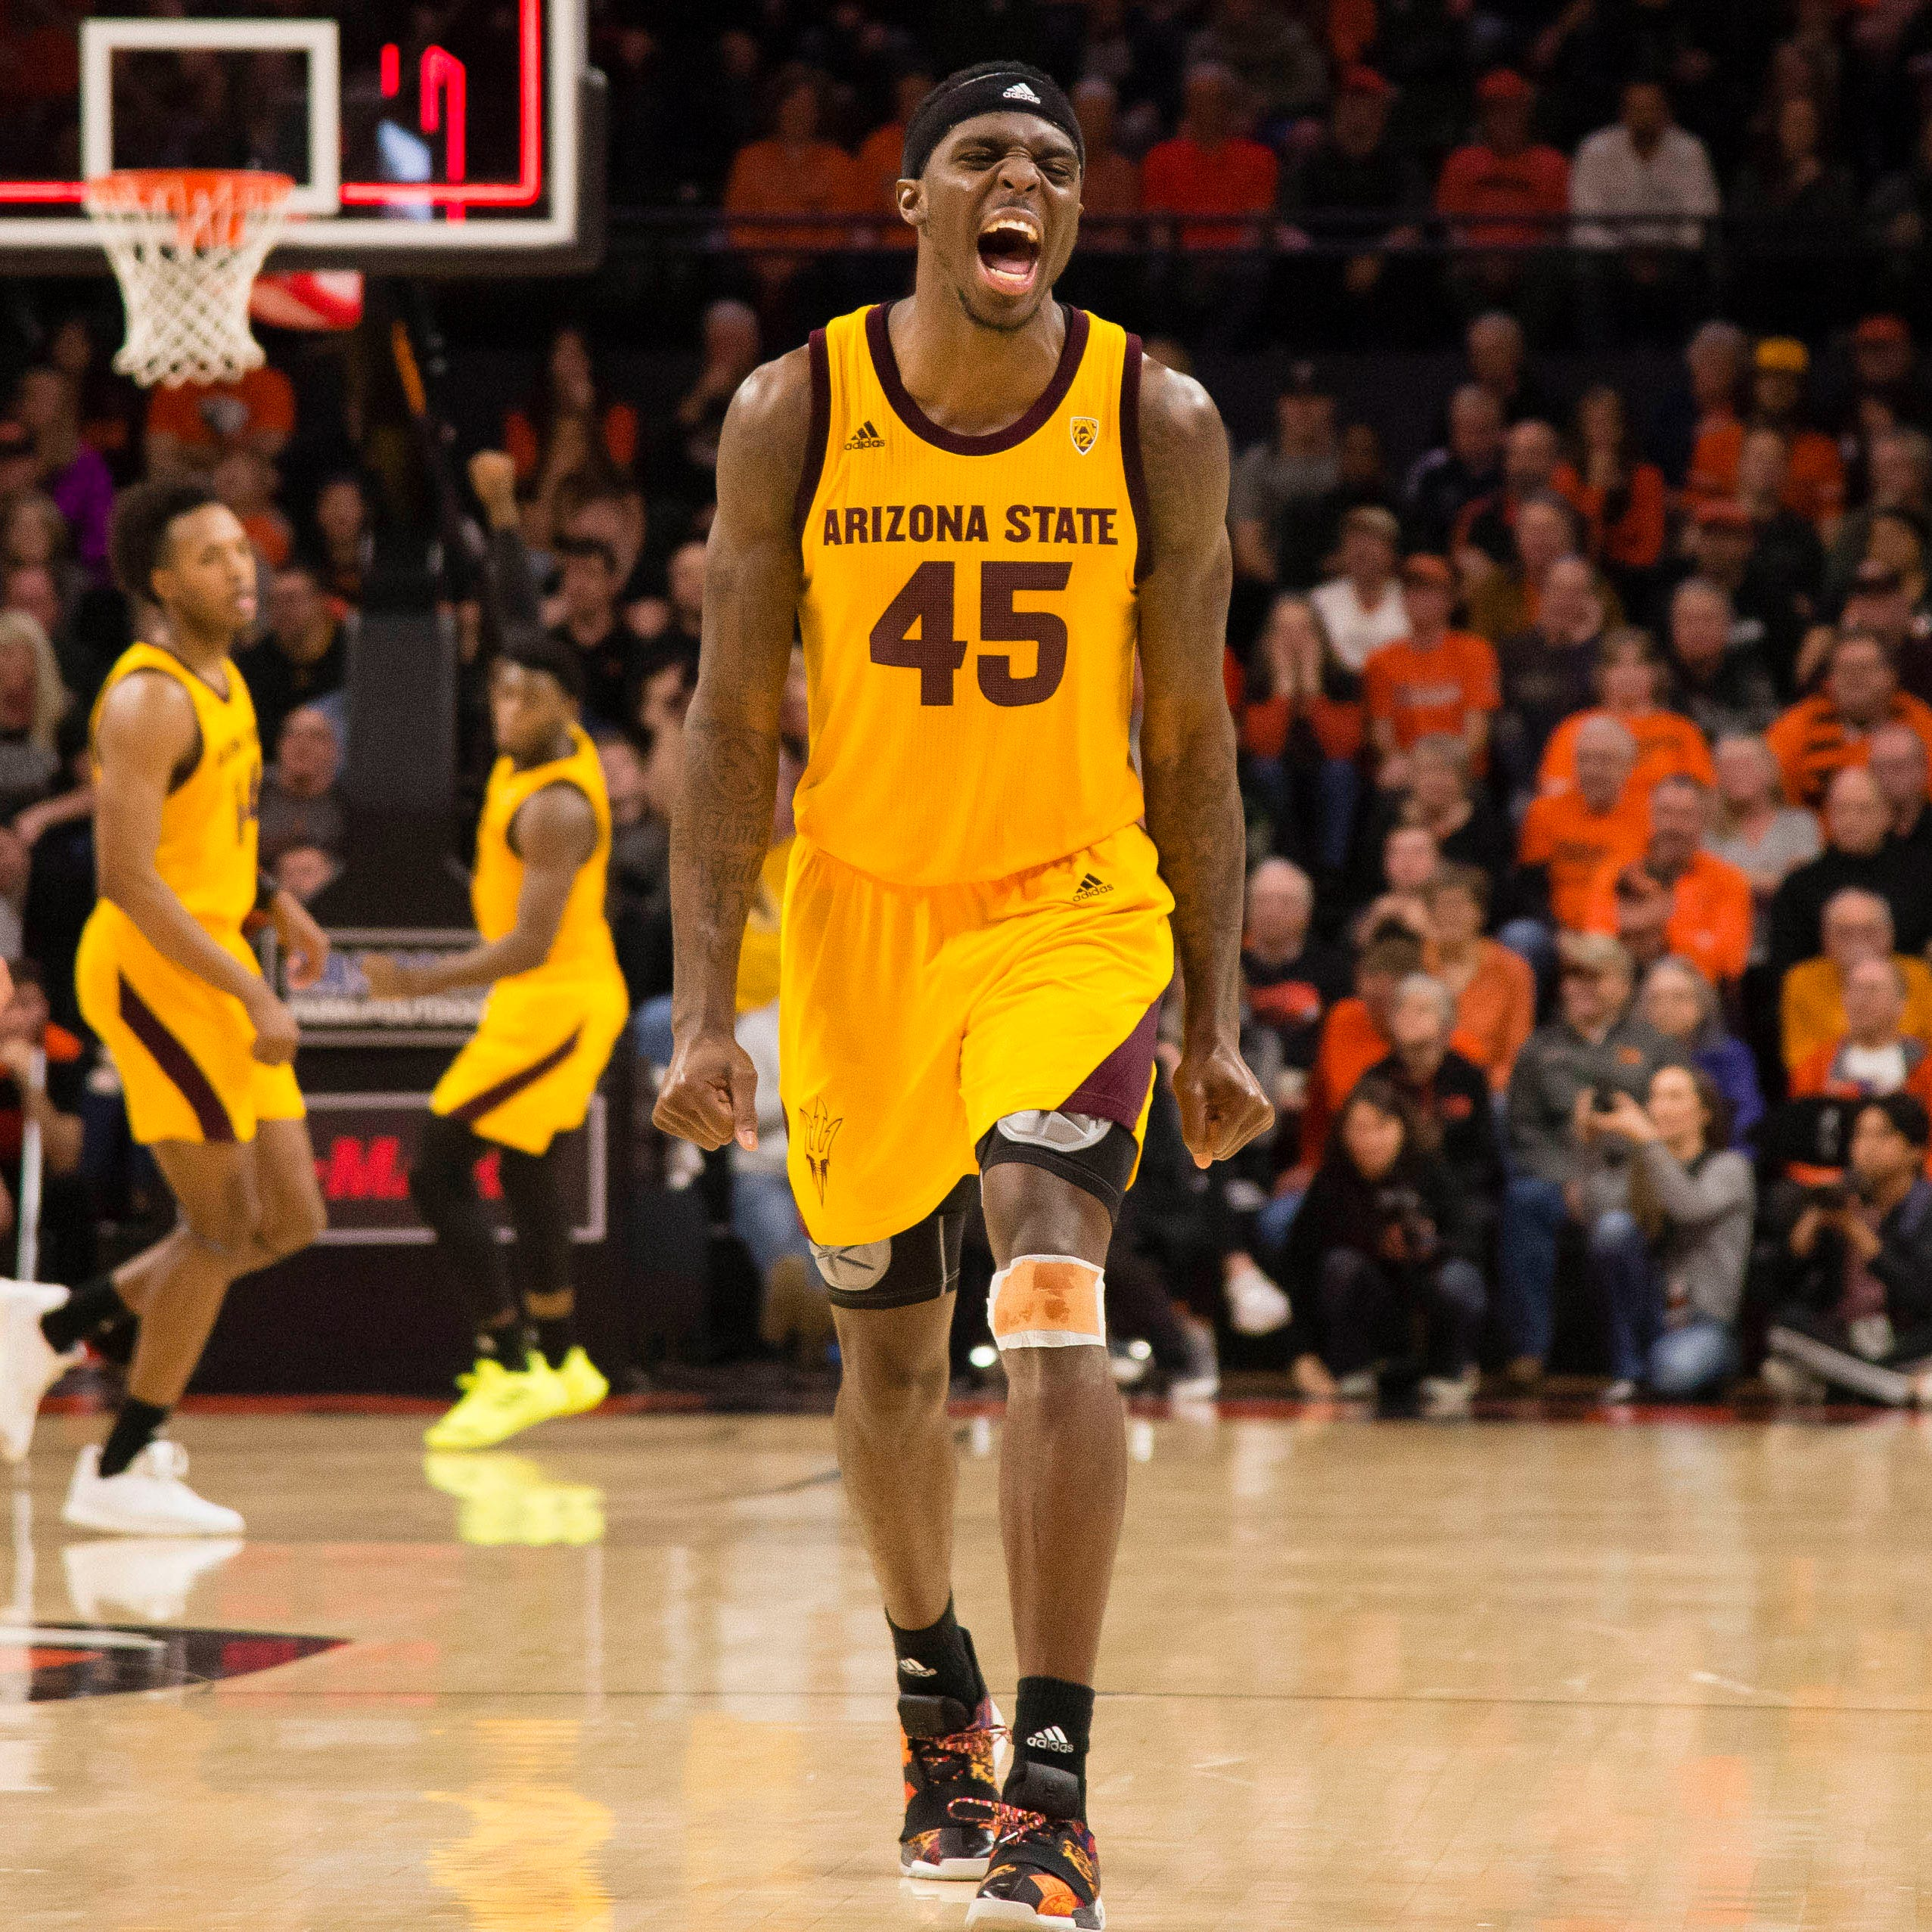 NCAA Tournament projections: ASU basketball among last four teams in March Madness bracket